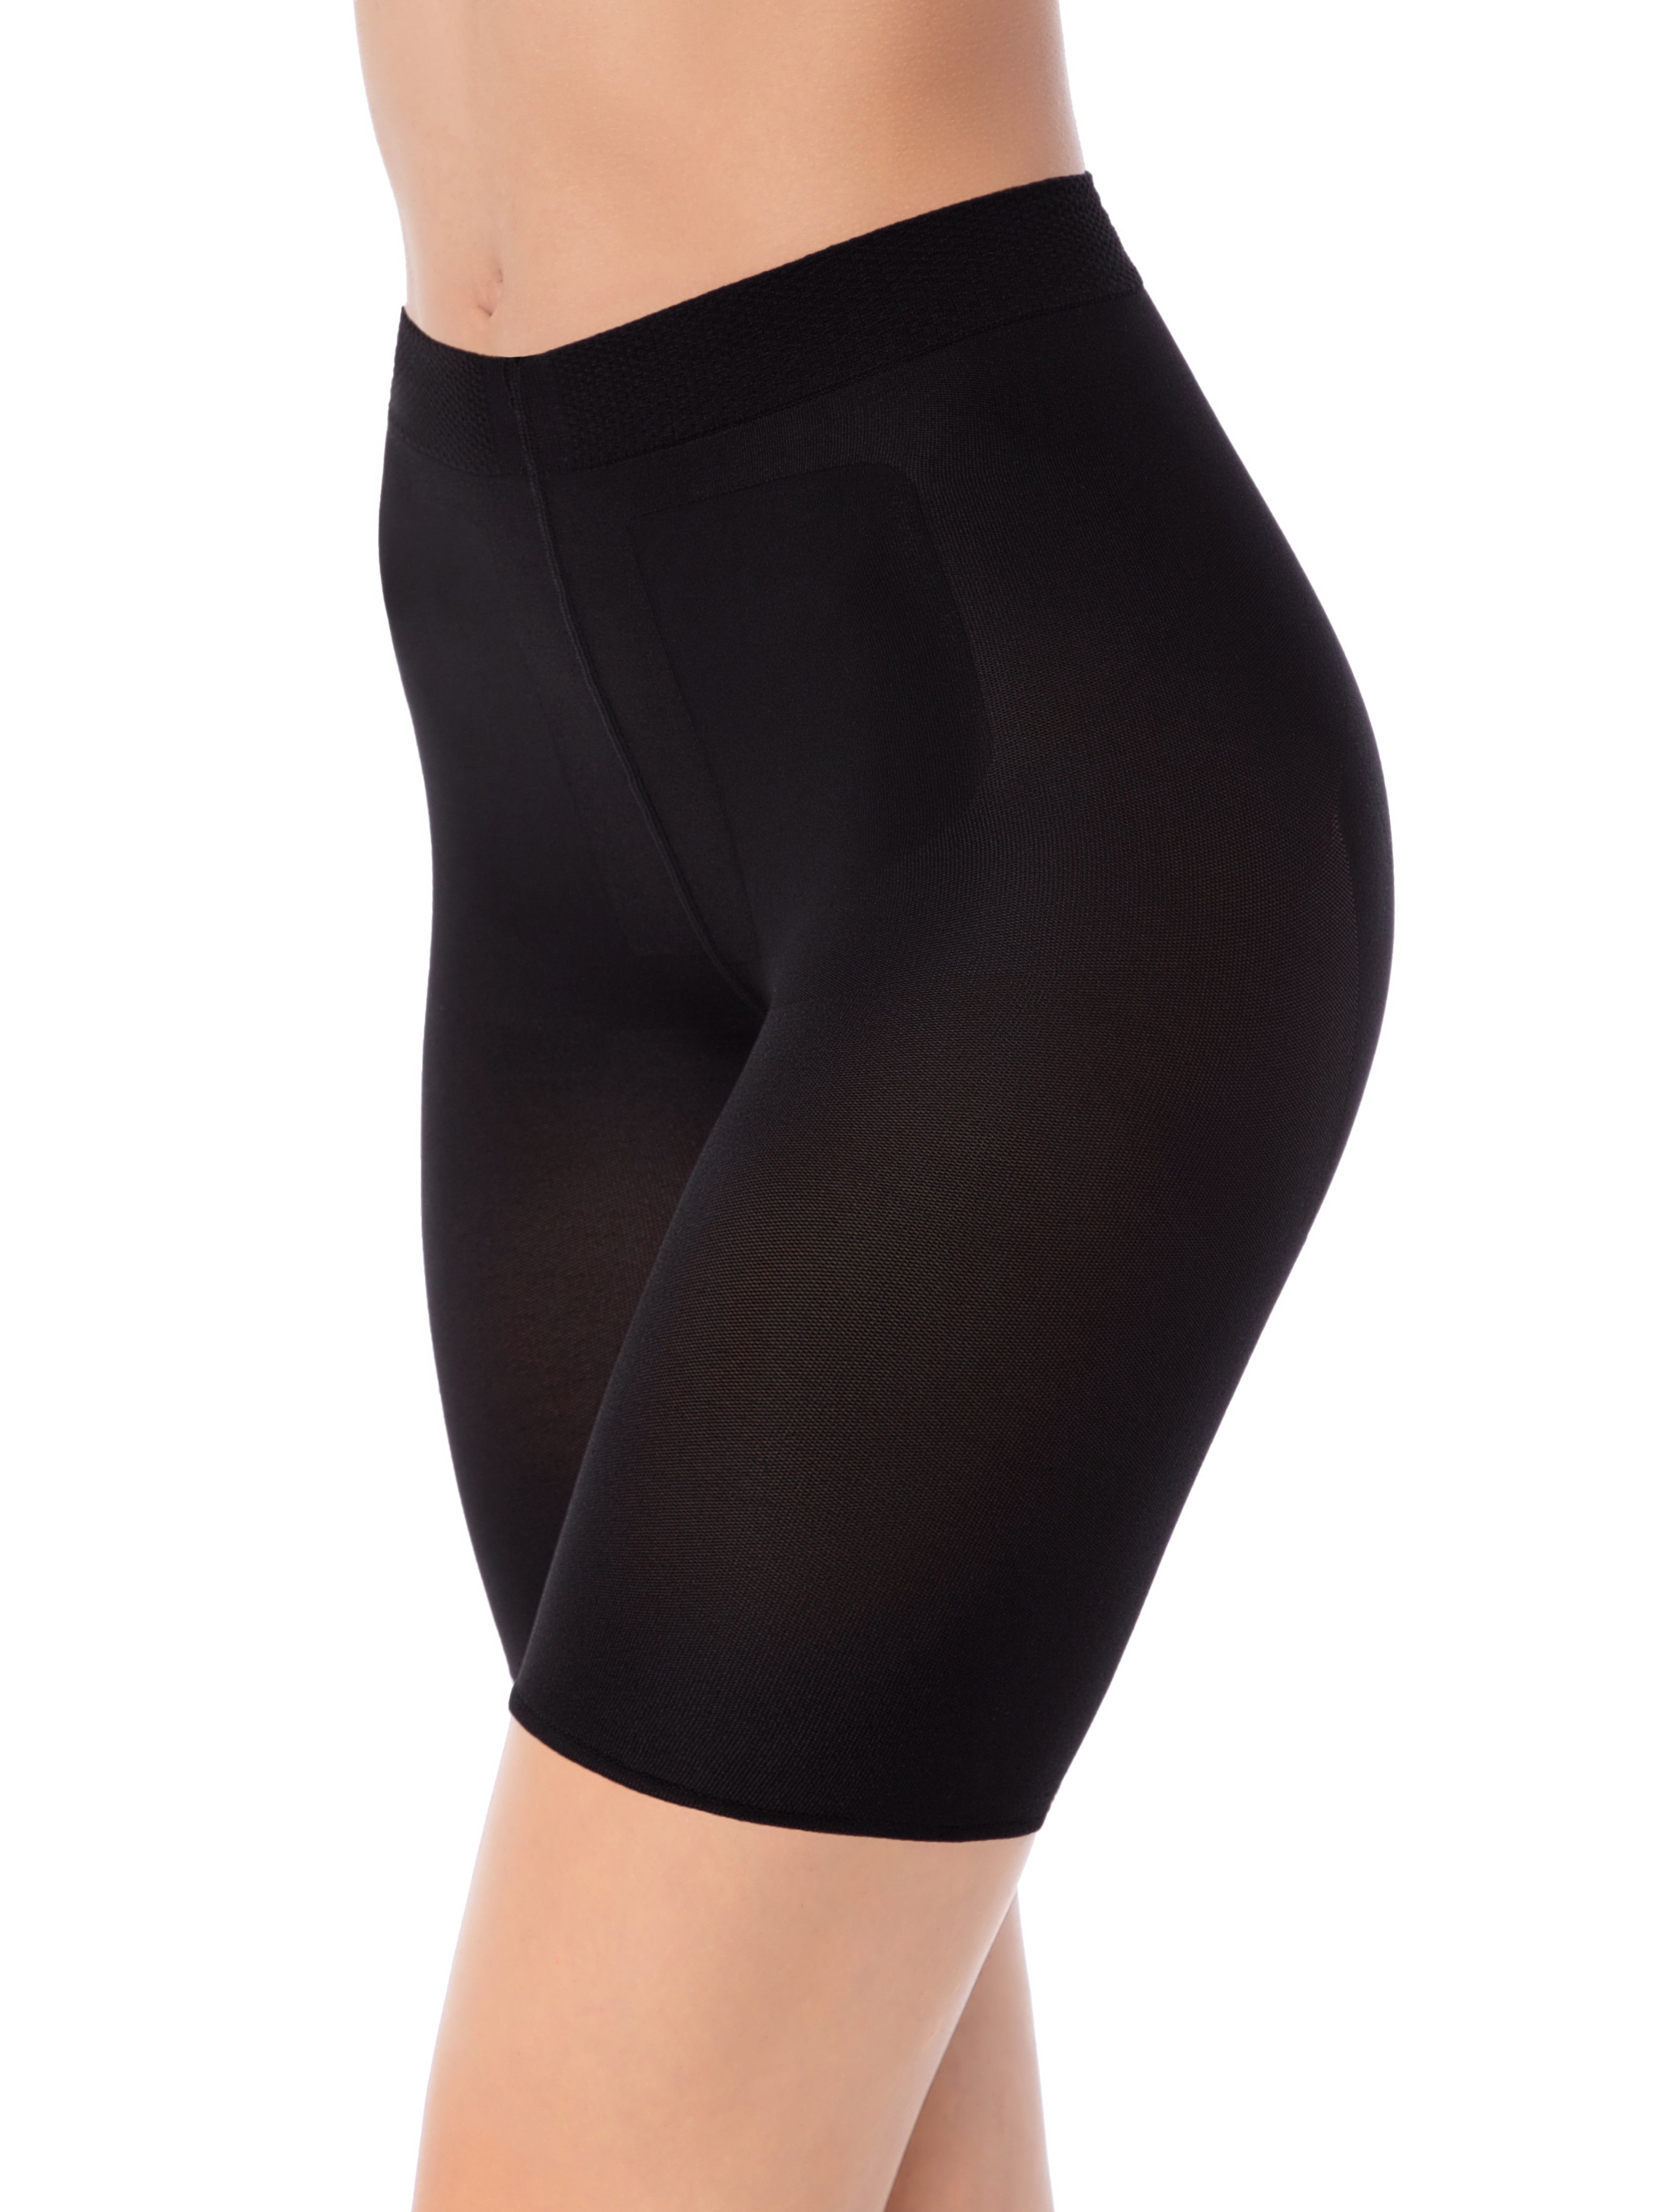 The Shaping Shorts